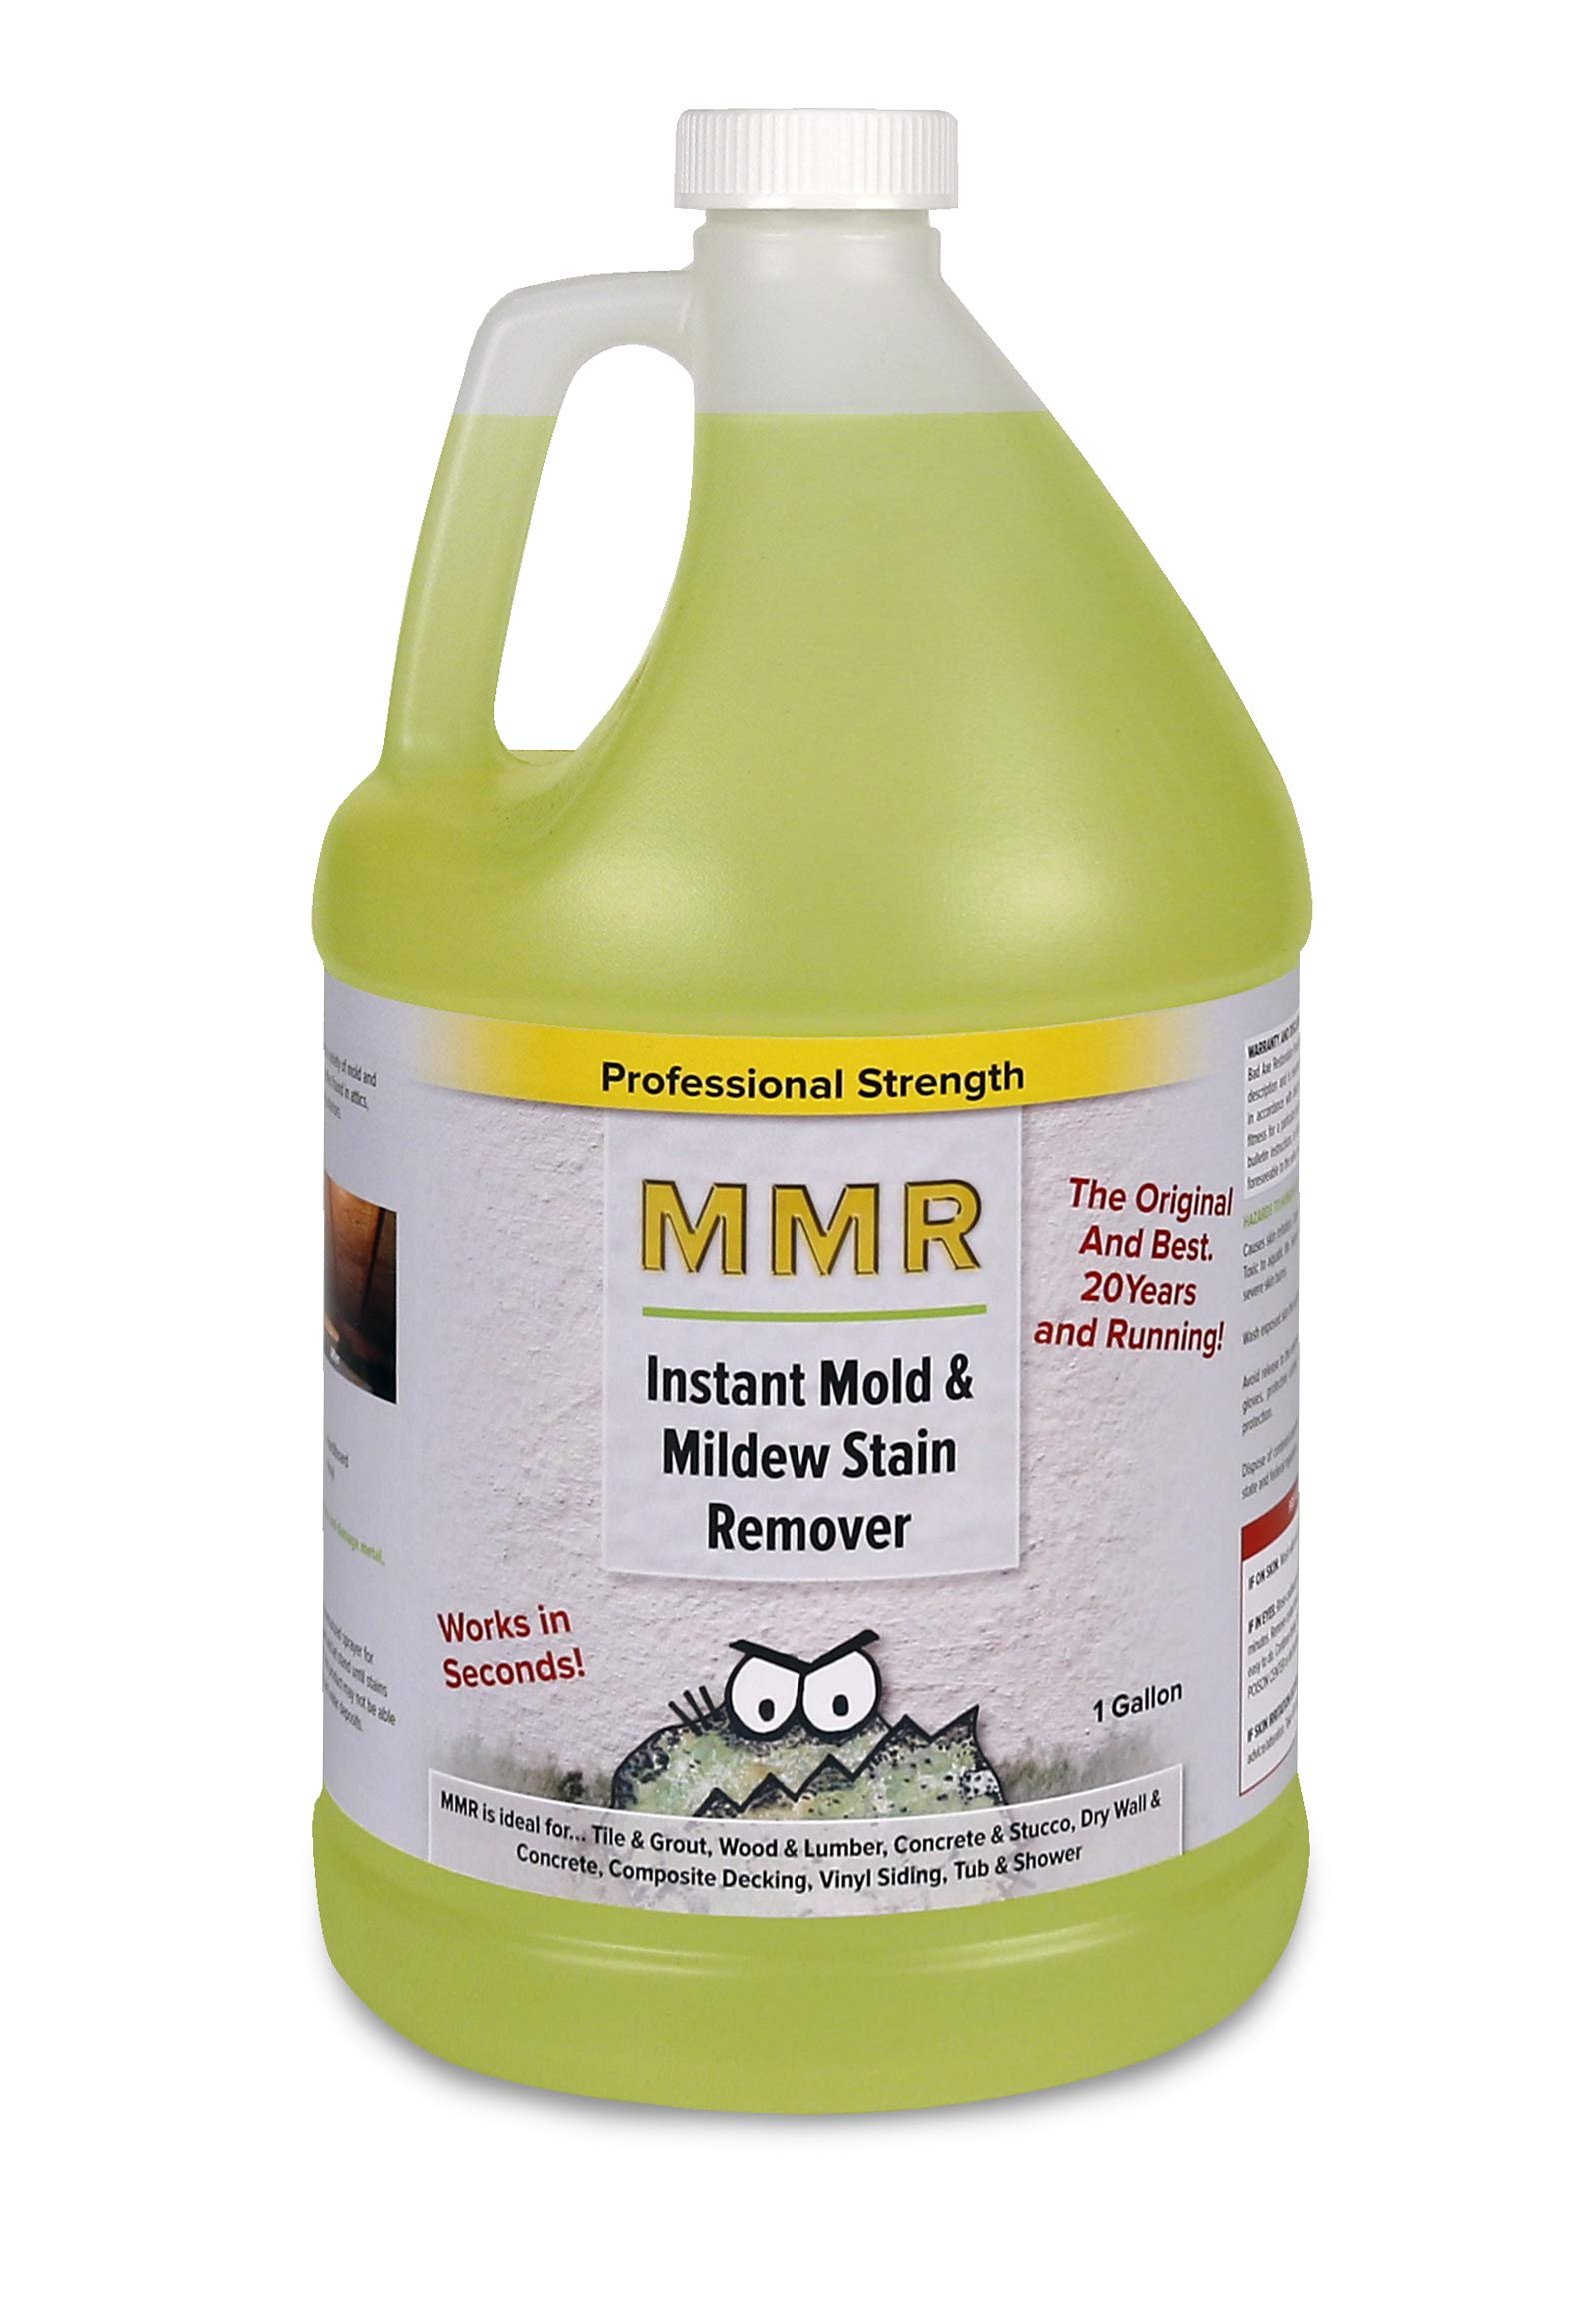 MMR Professional Strength Instant Mold and Mildew Stain Remover 1 Gallon